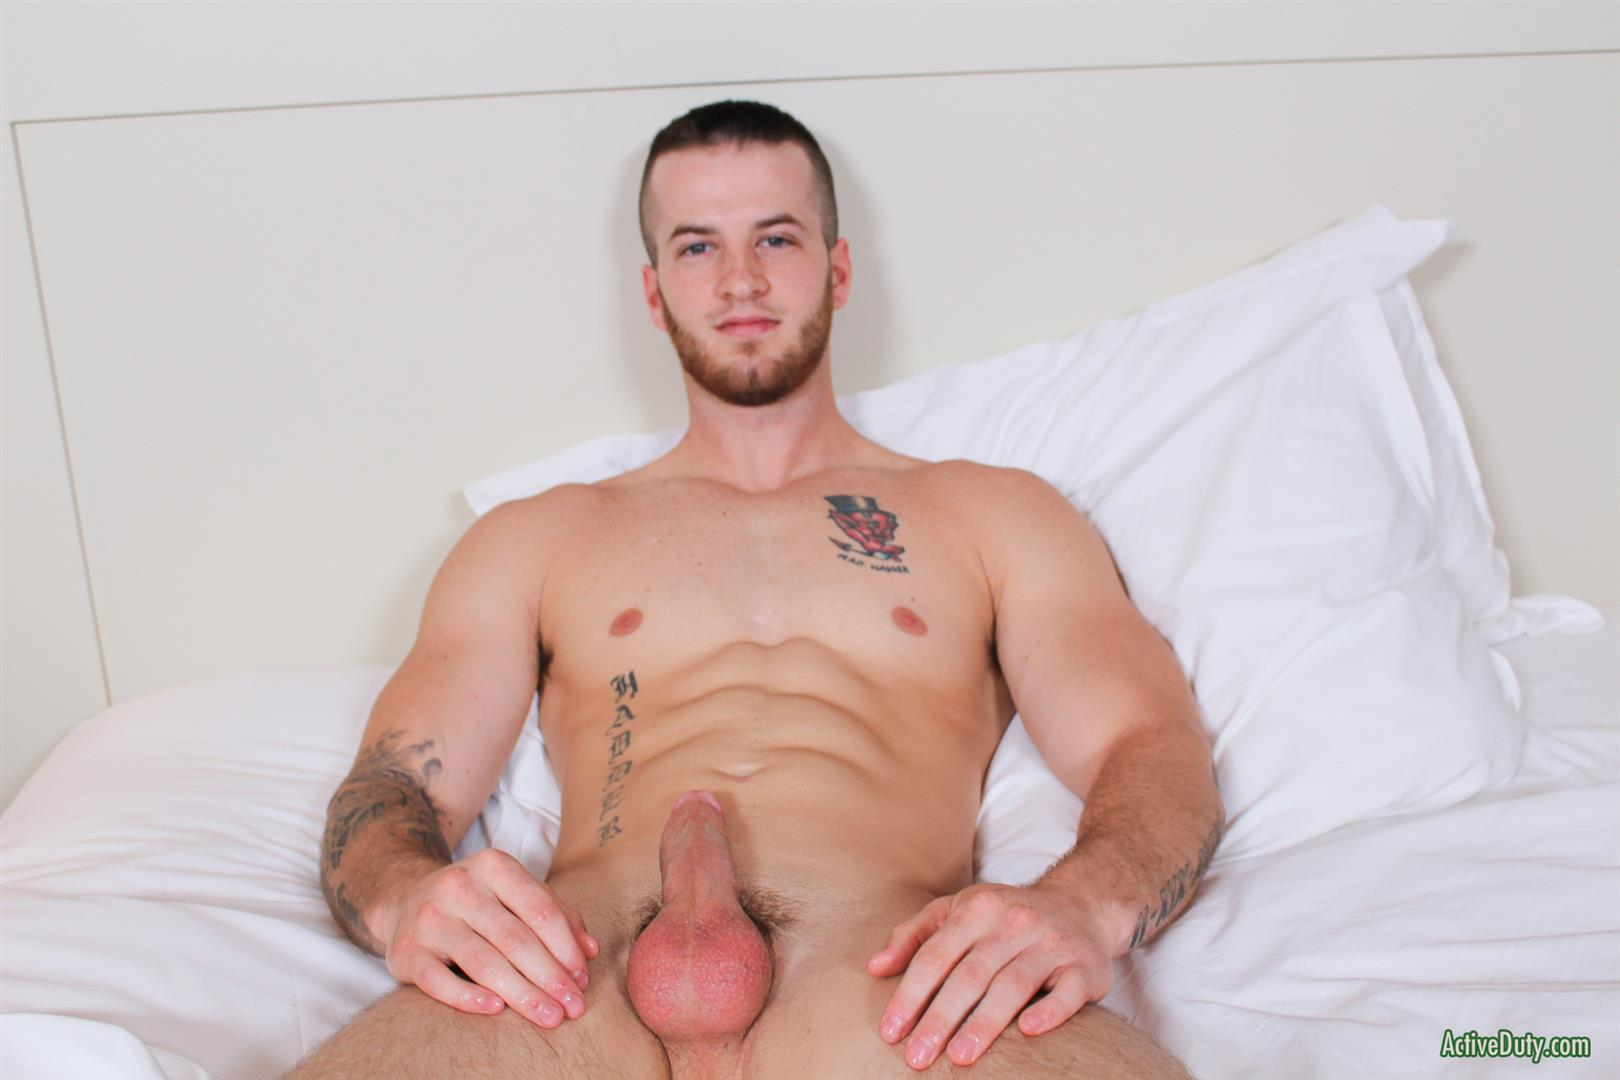 Active Duty Quentin Muscular Naked Army Soldier Masturbating Big Cock Amateur Gay Porn 12